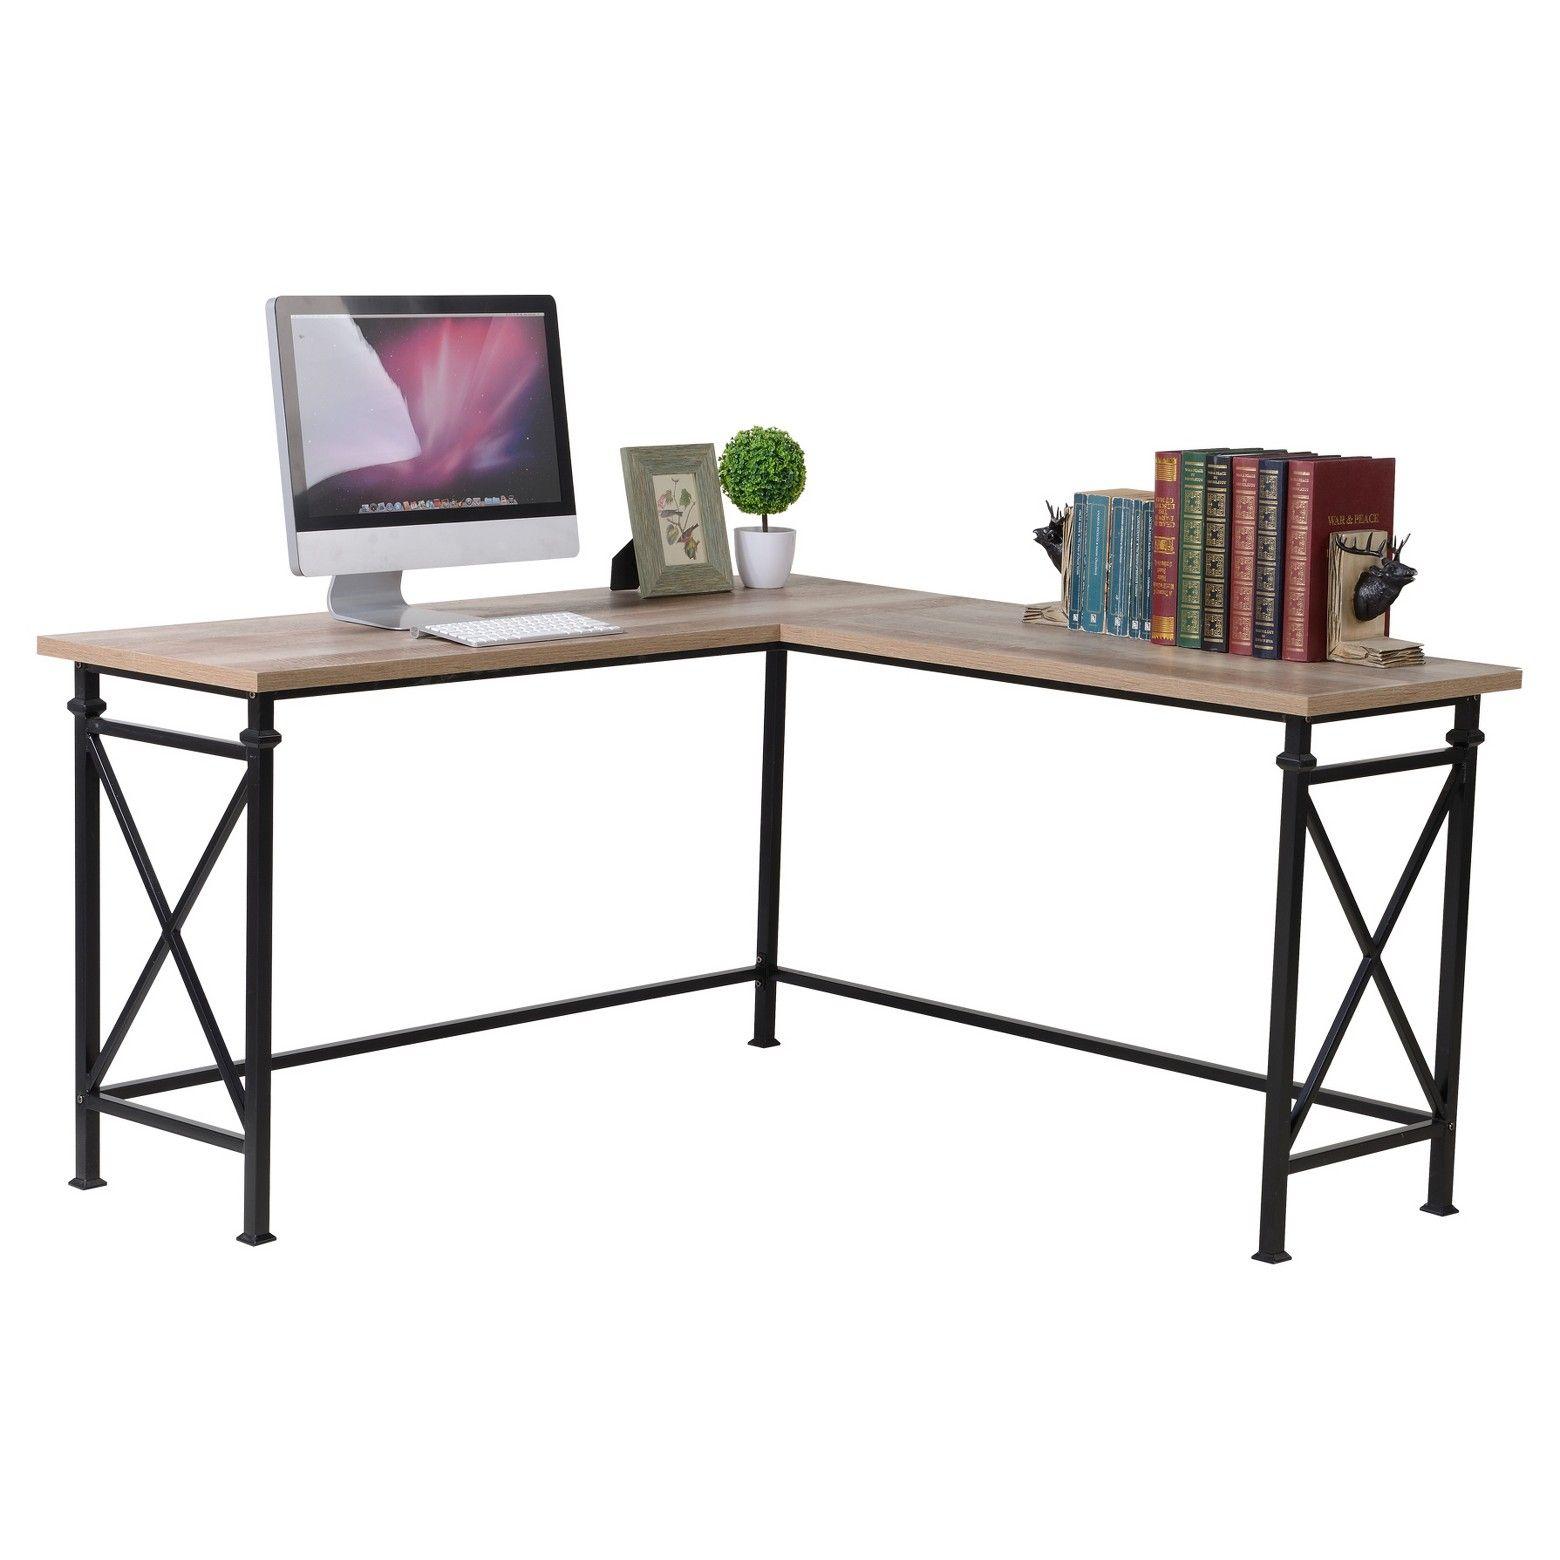 table with idea industrial steel legs desk metal lovely